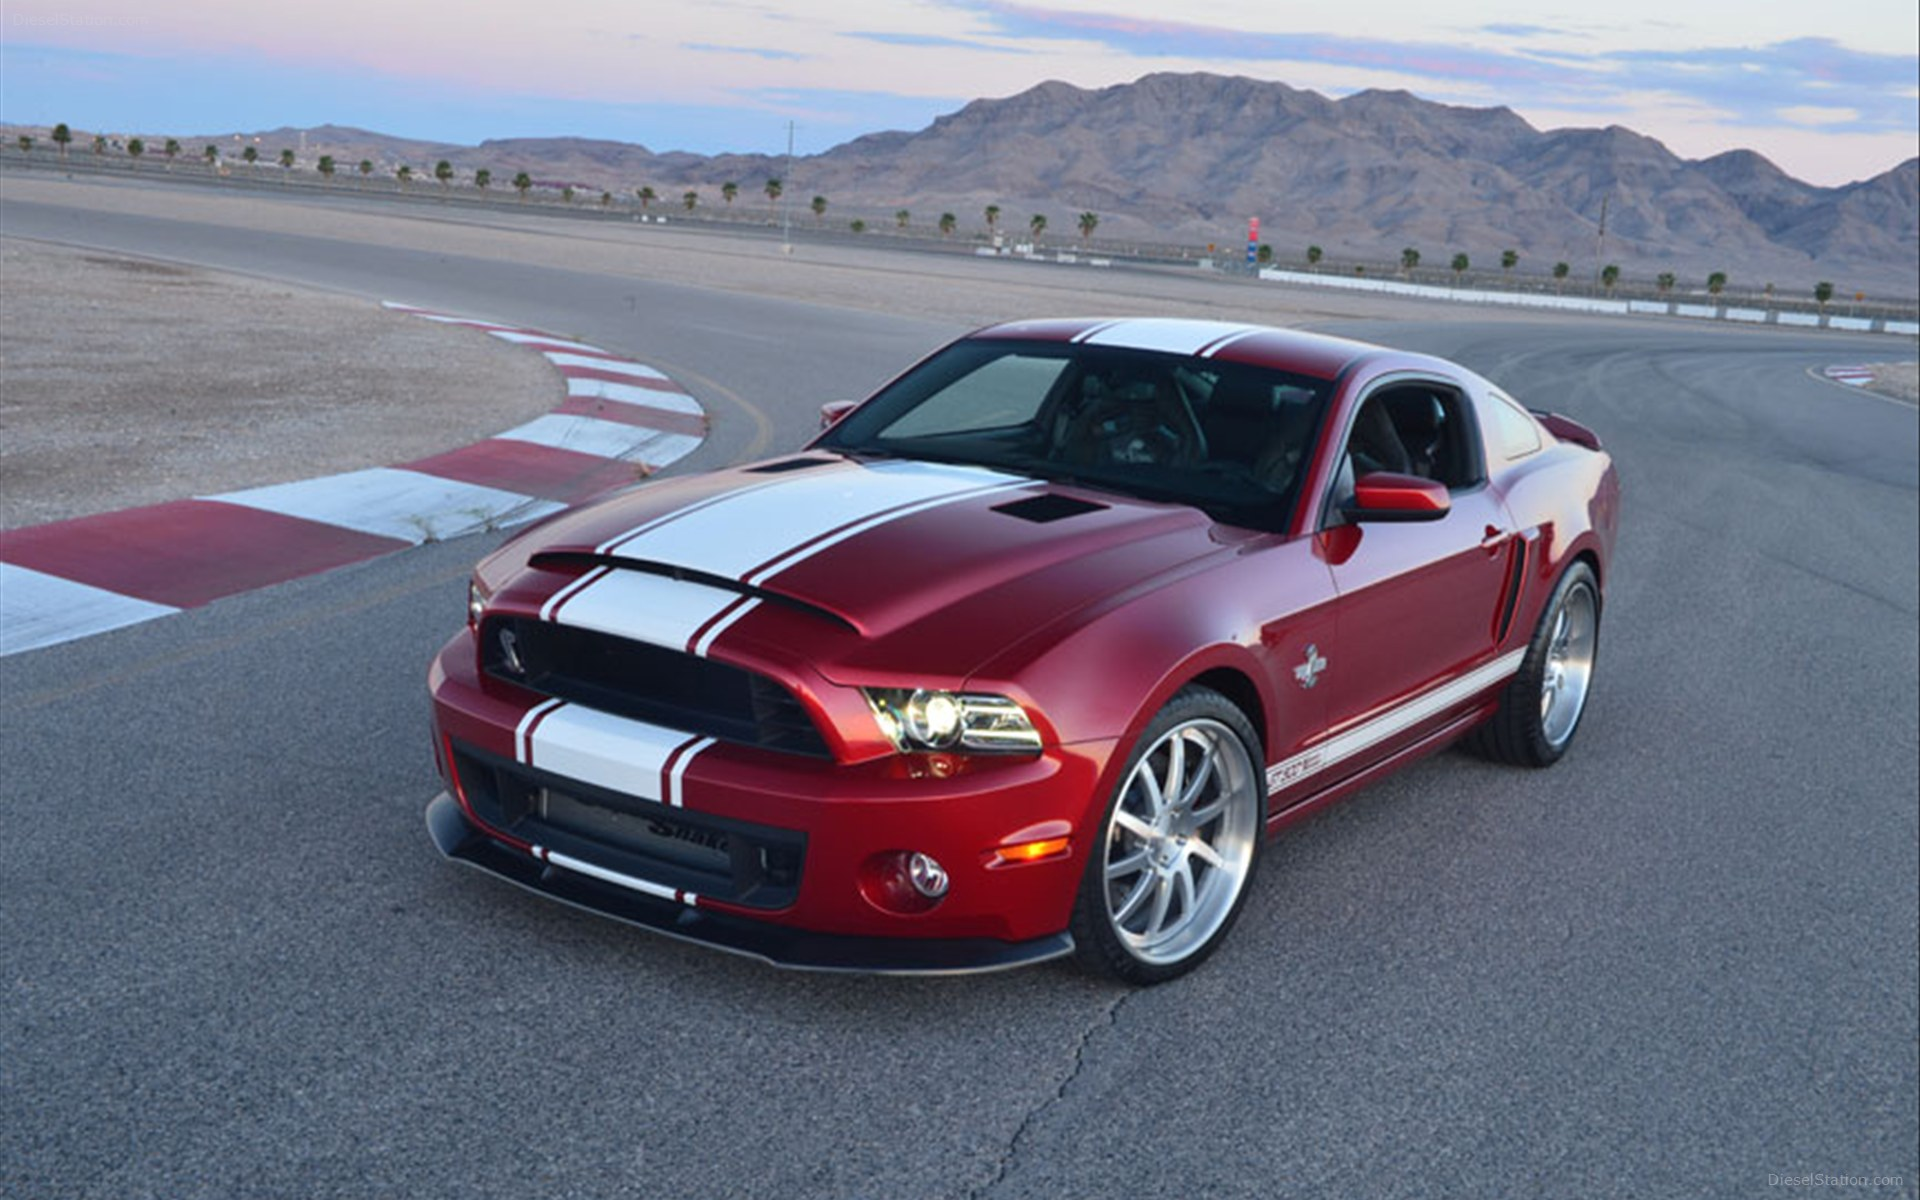 Home Shelby Shelby American GT500 Super Snake 2013 1920x1200